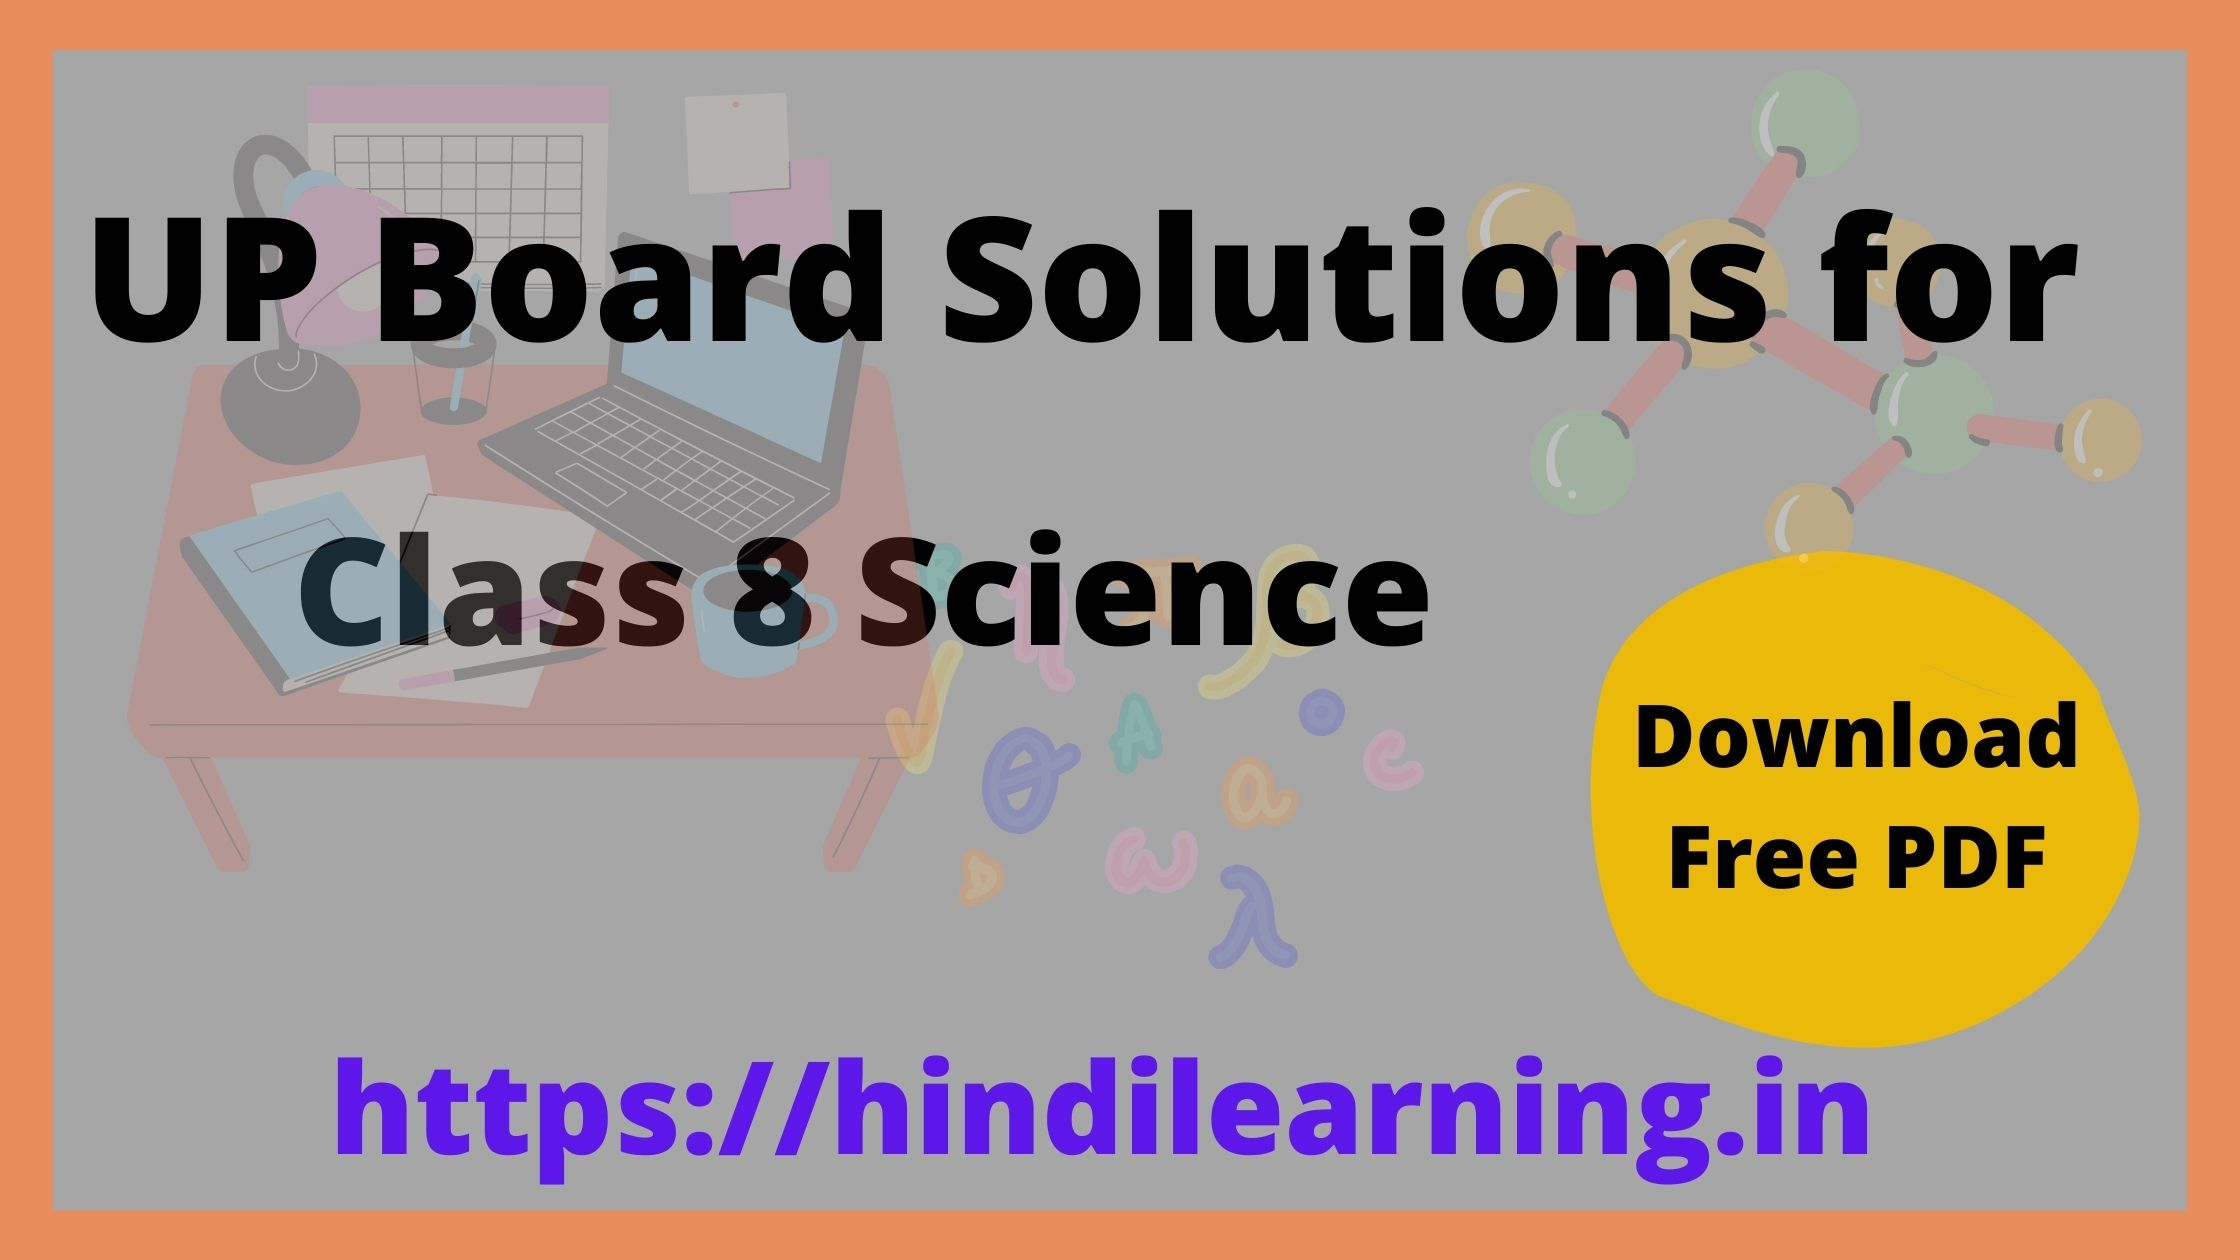 UP Board Solutions for Class 8 Science विज्ञान